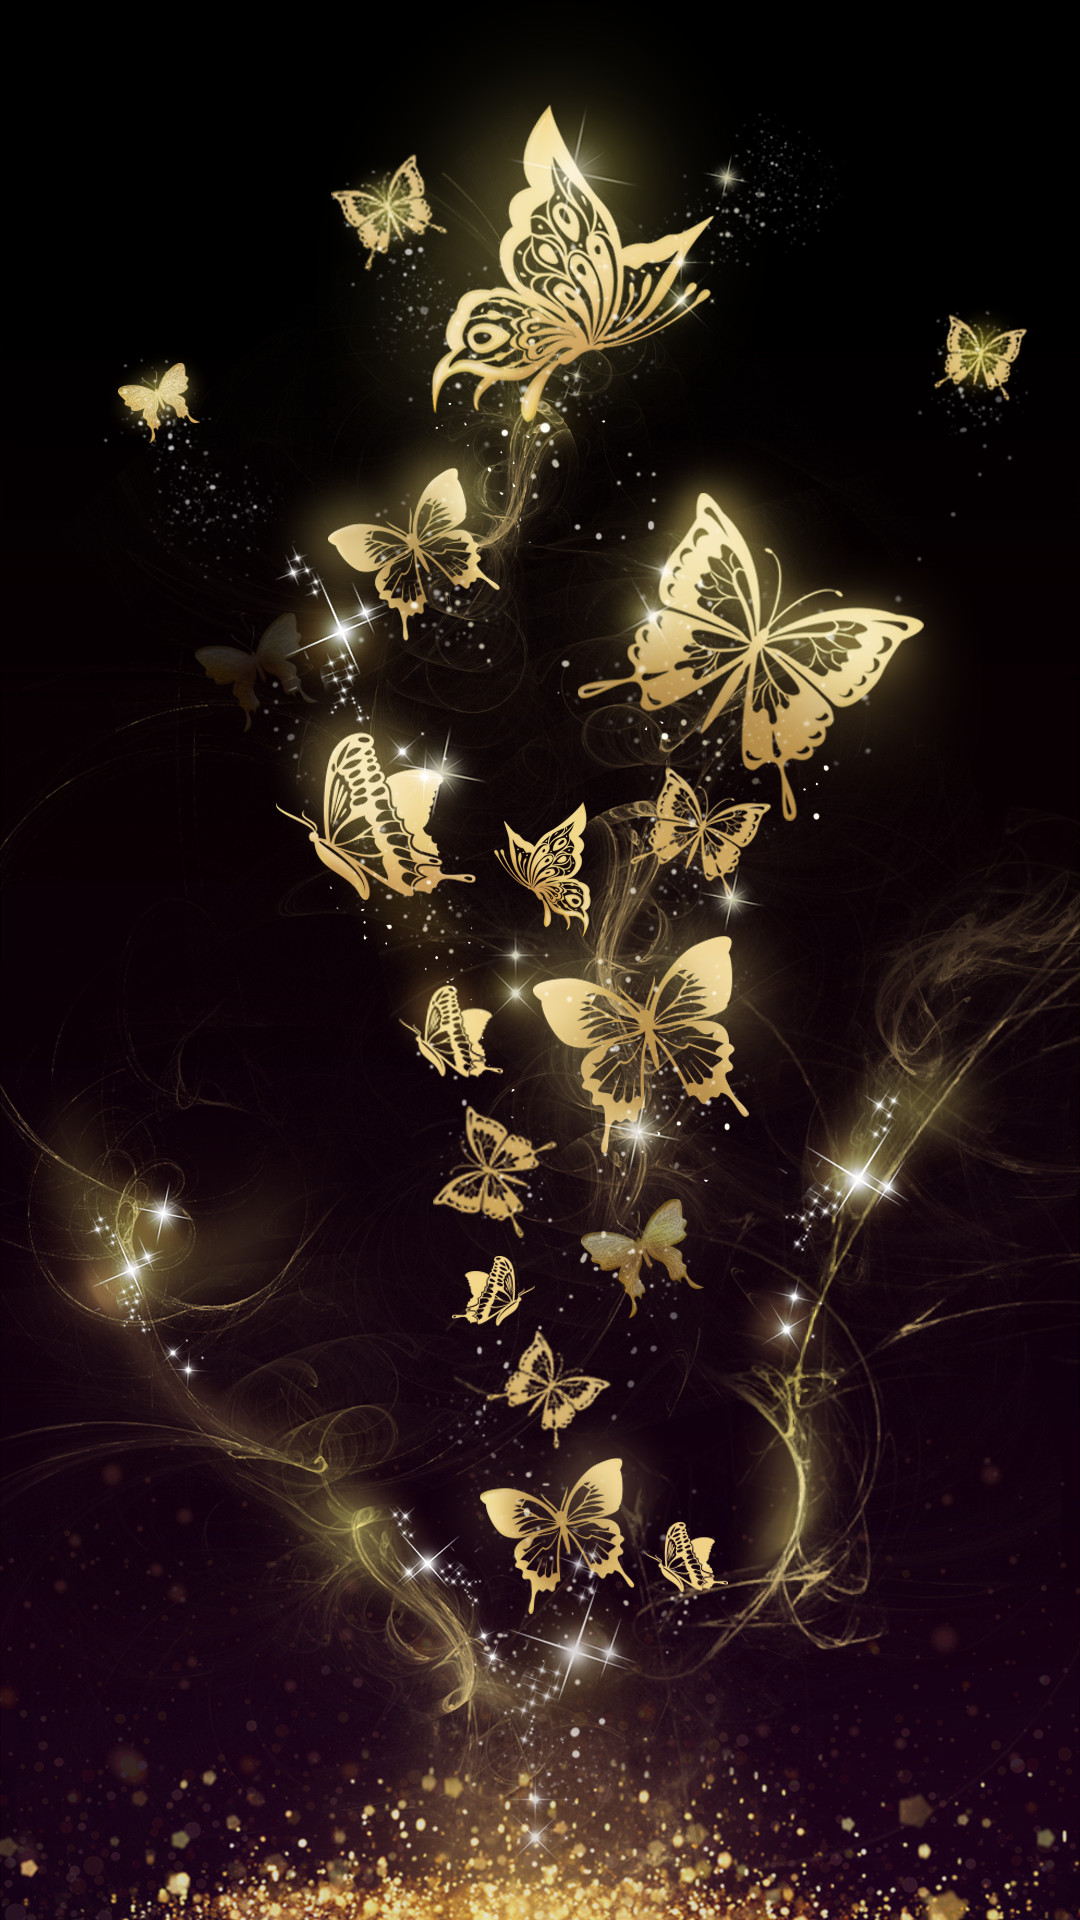 53 Butterfly Screensavers And Wallpapers